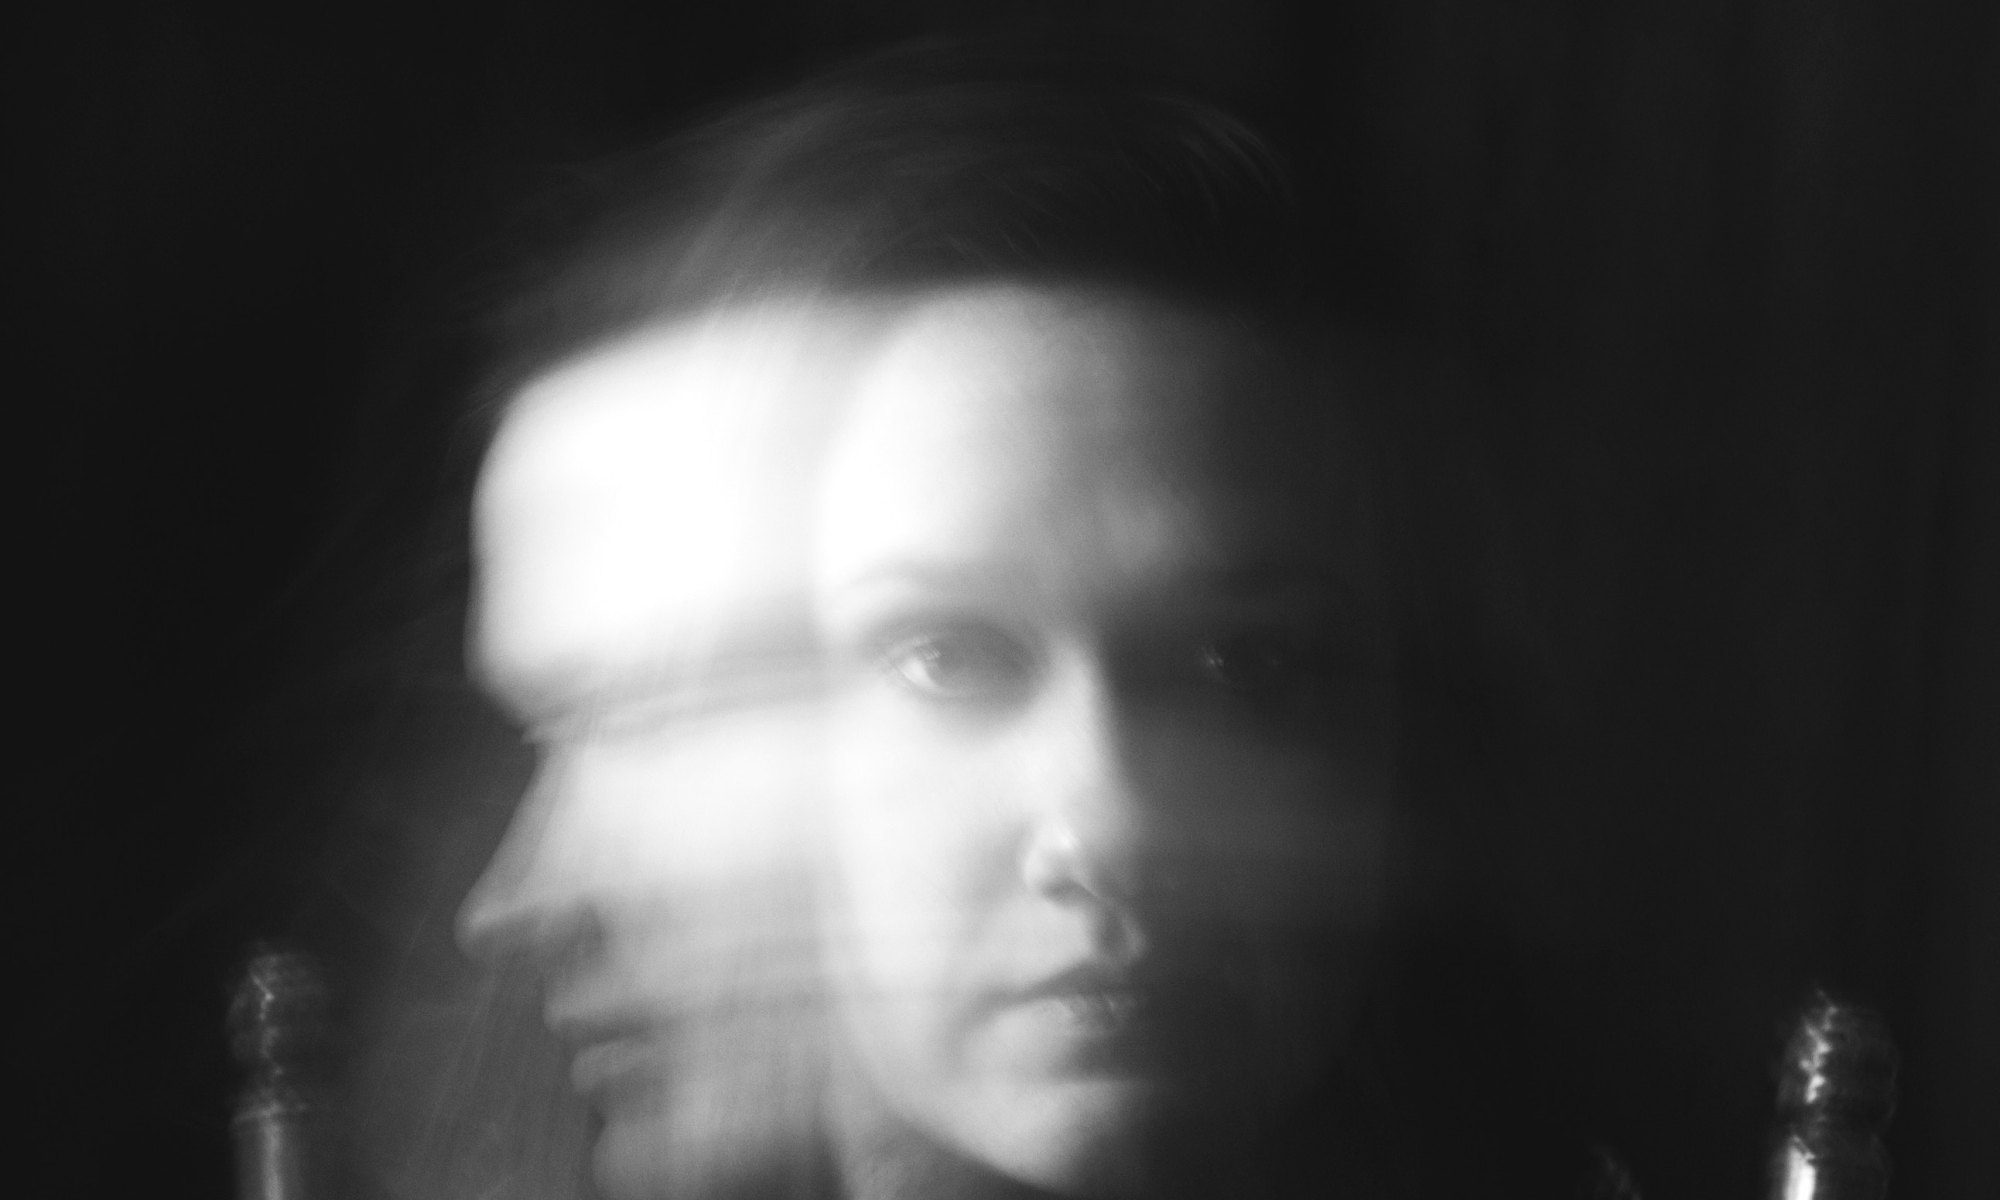 Shade photo of woman with schizophrenia